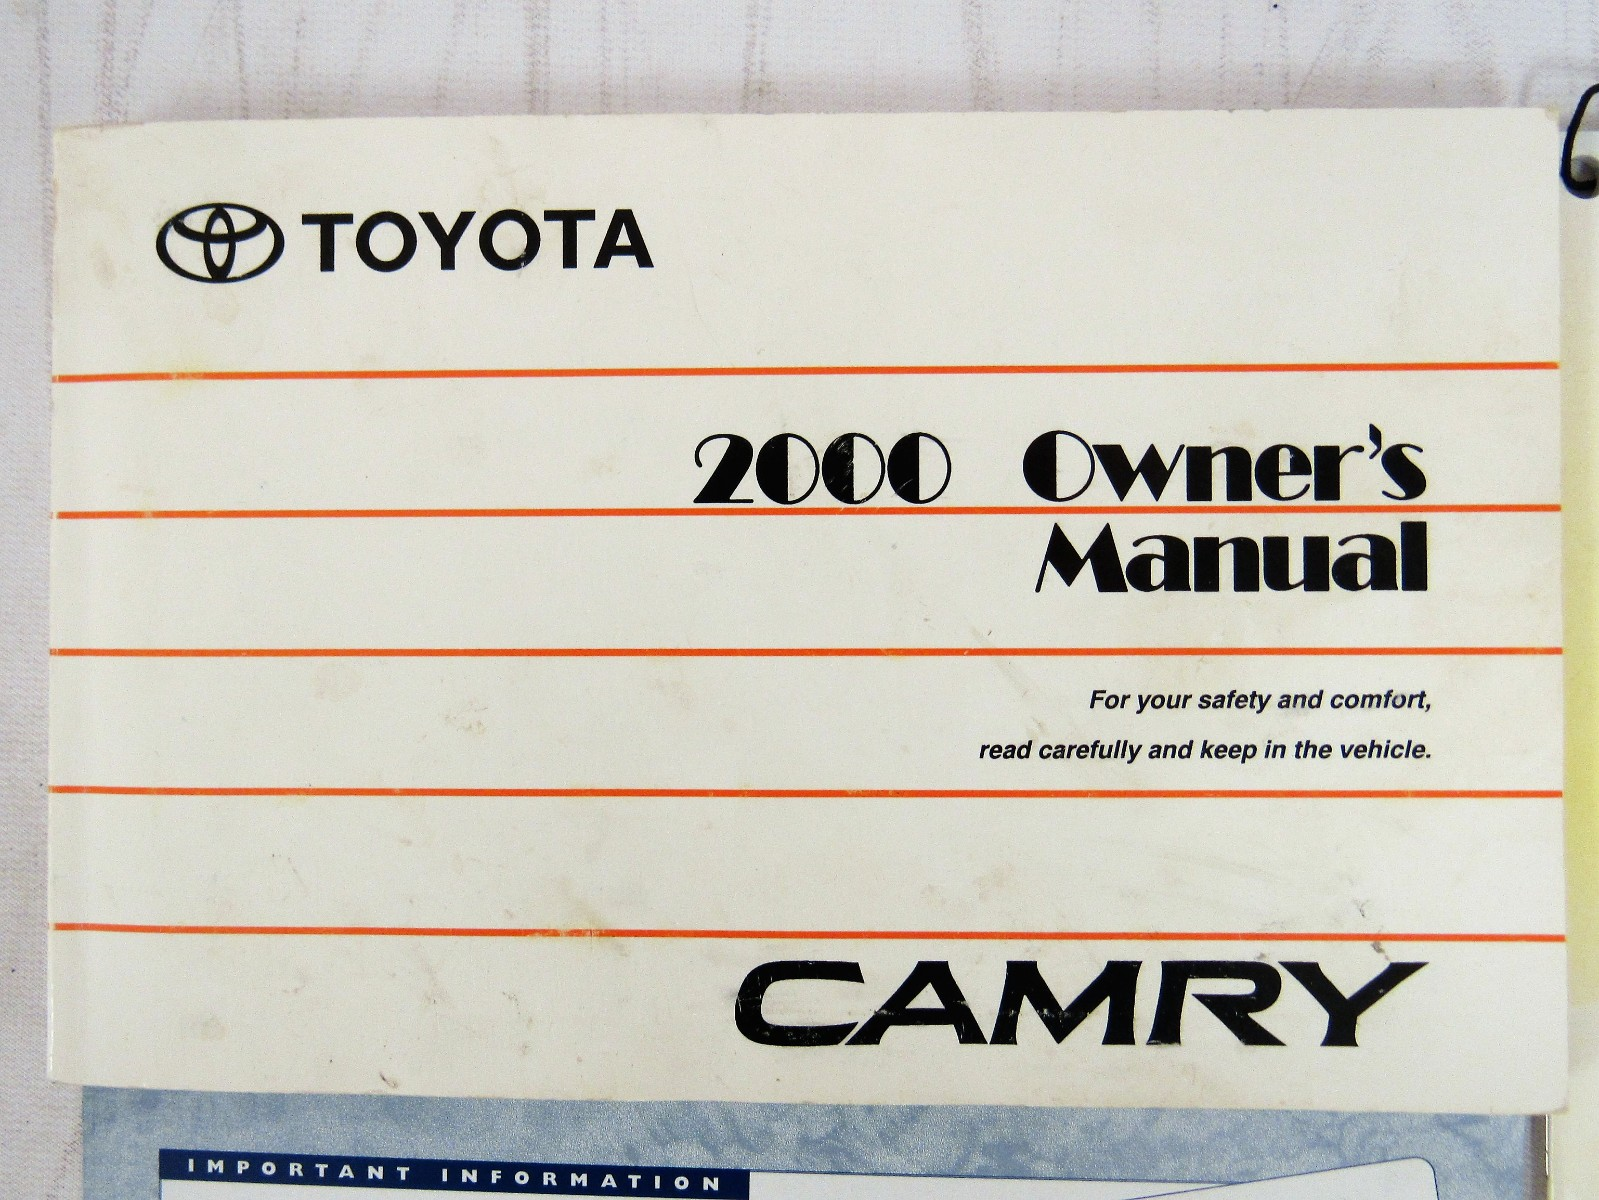 2000 toyota camry owners manual book bashful yak rh bashfulyak com 2000 toyota camry service manual download 2000 toyota camry factory service manual